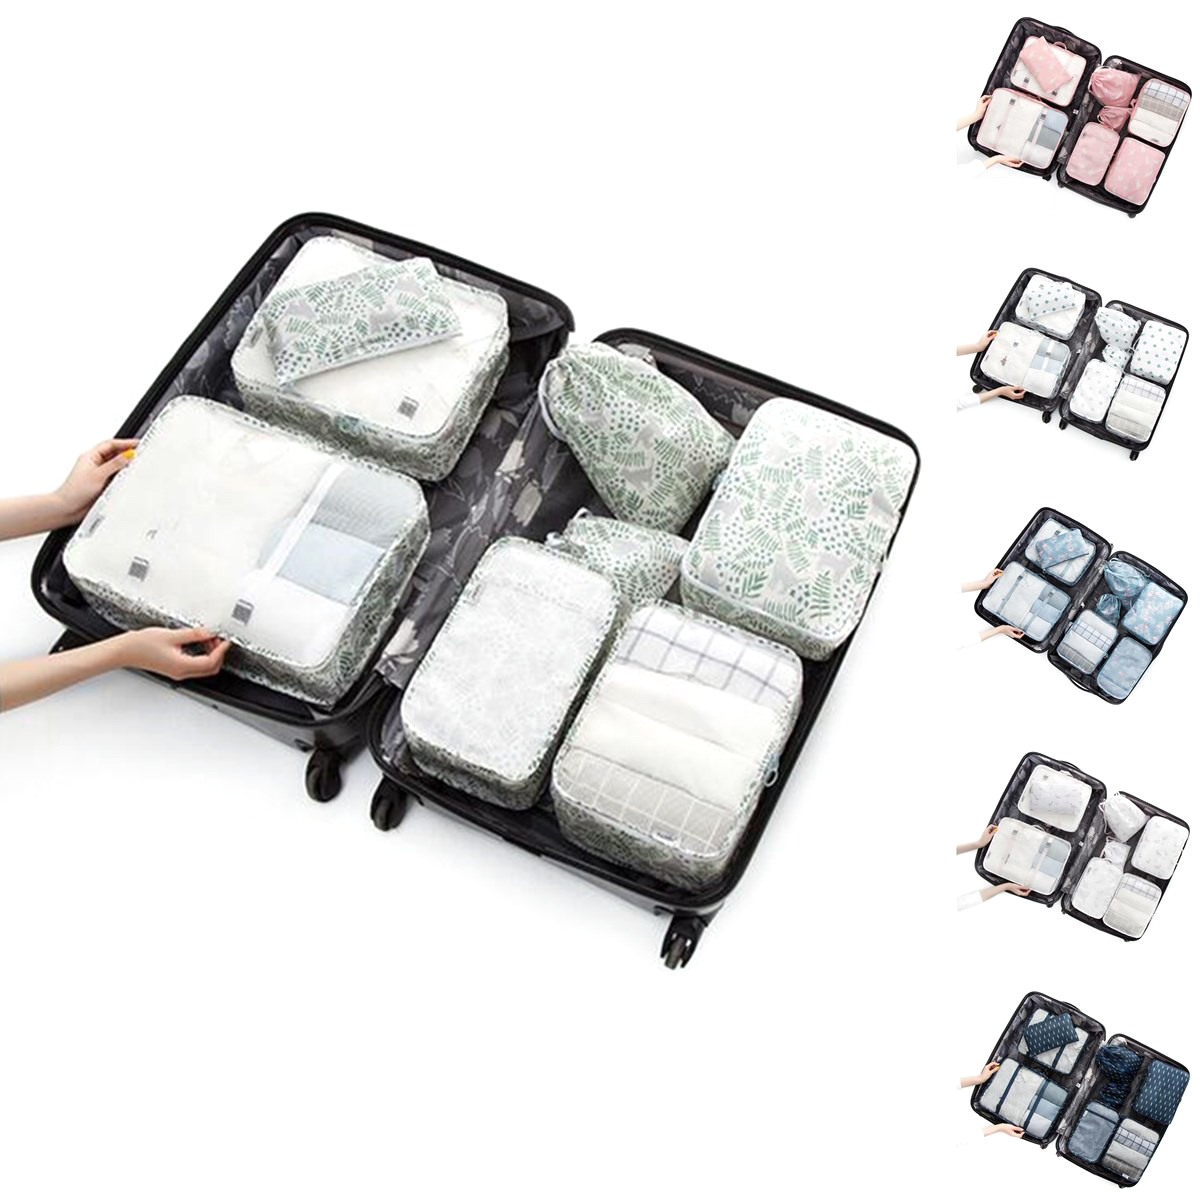 8PCS/Set Travel Luggage Organizer Storage Pouches Suitc